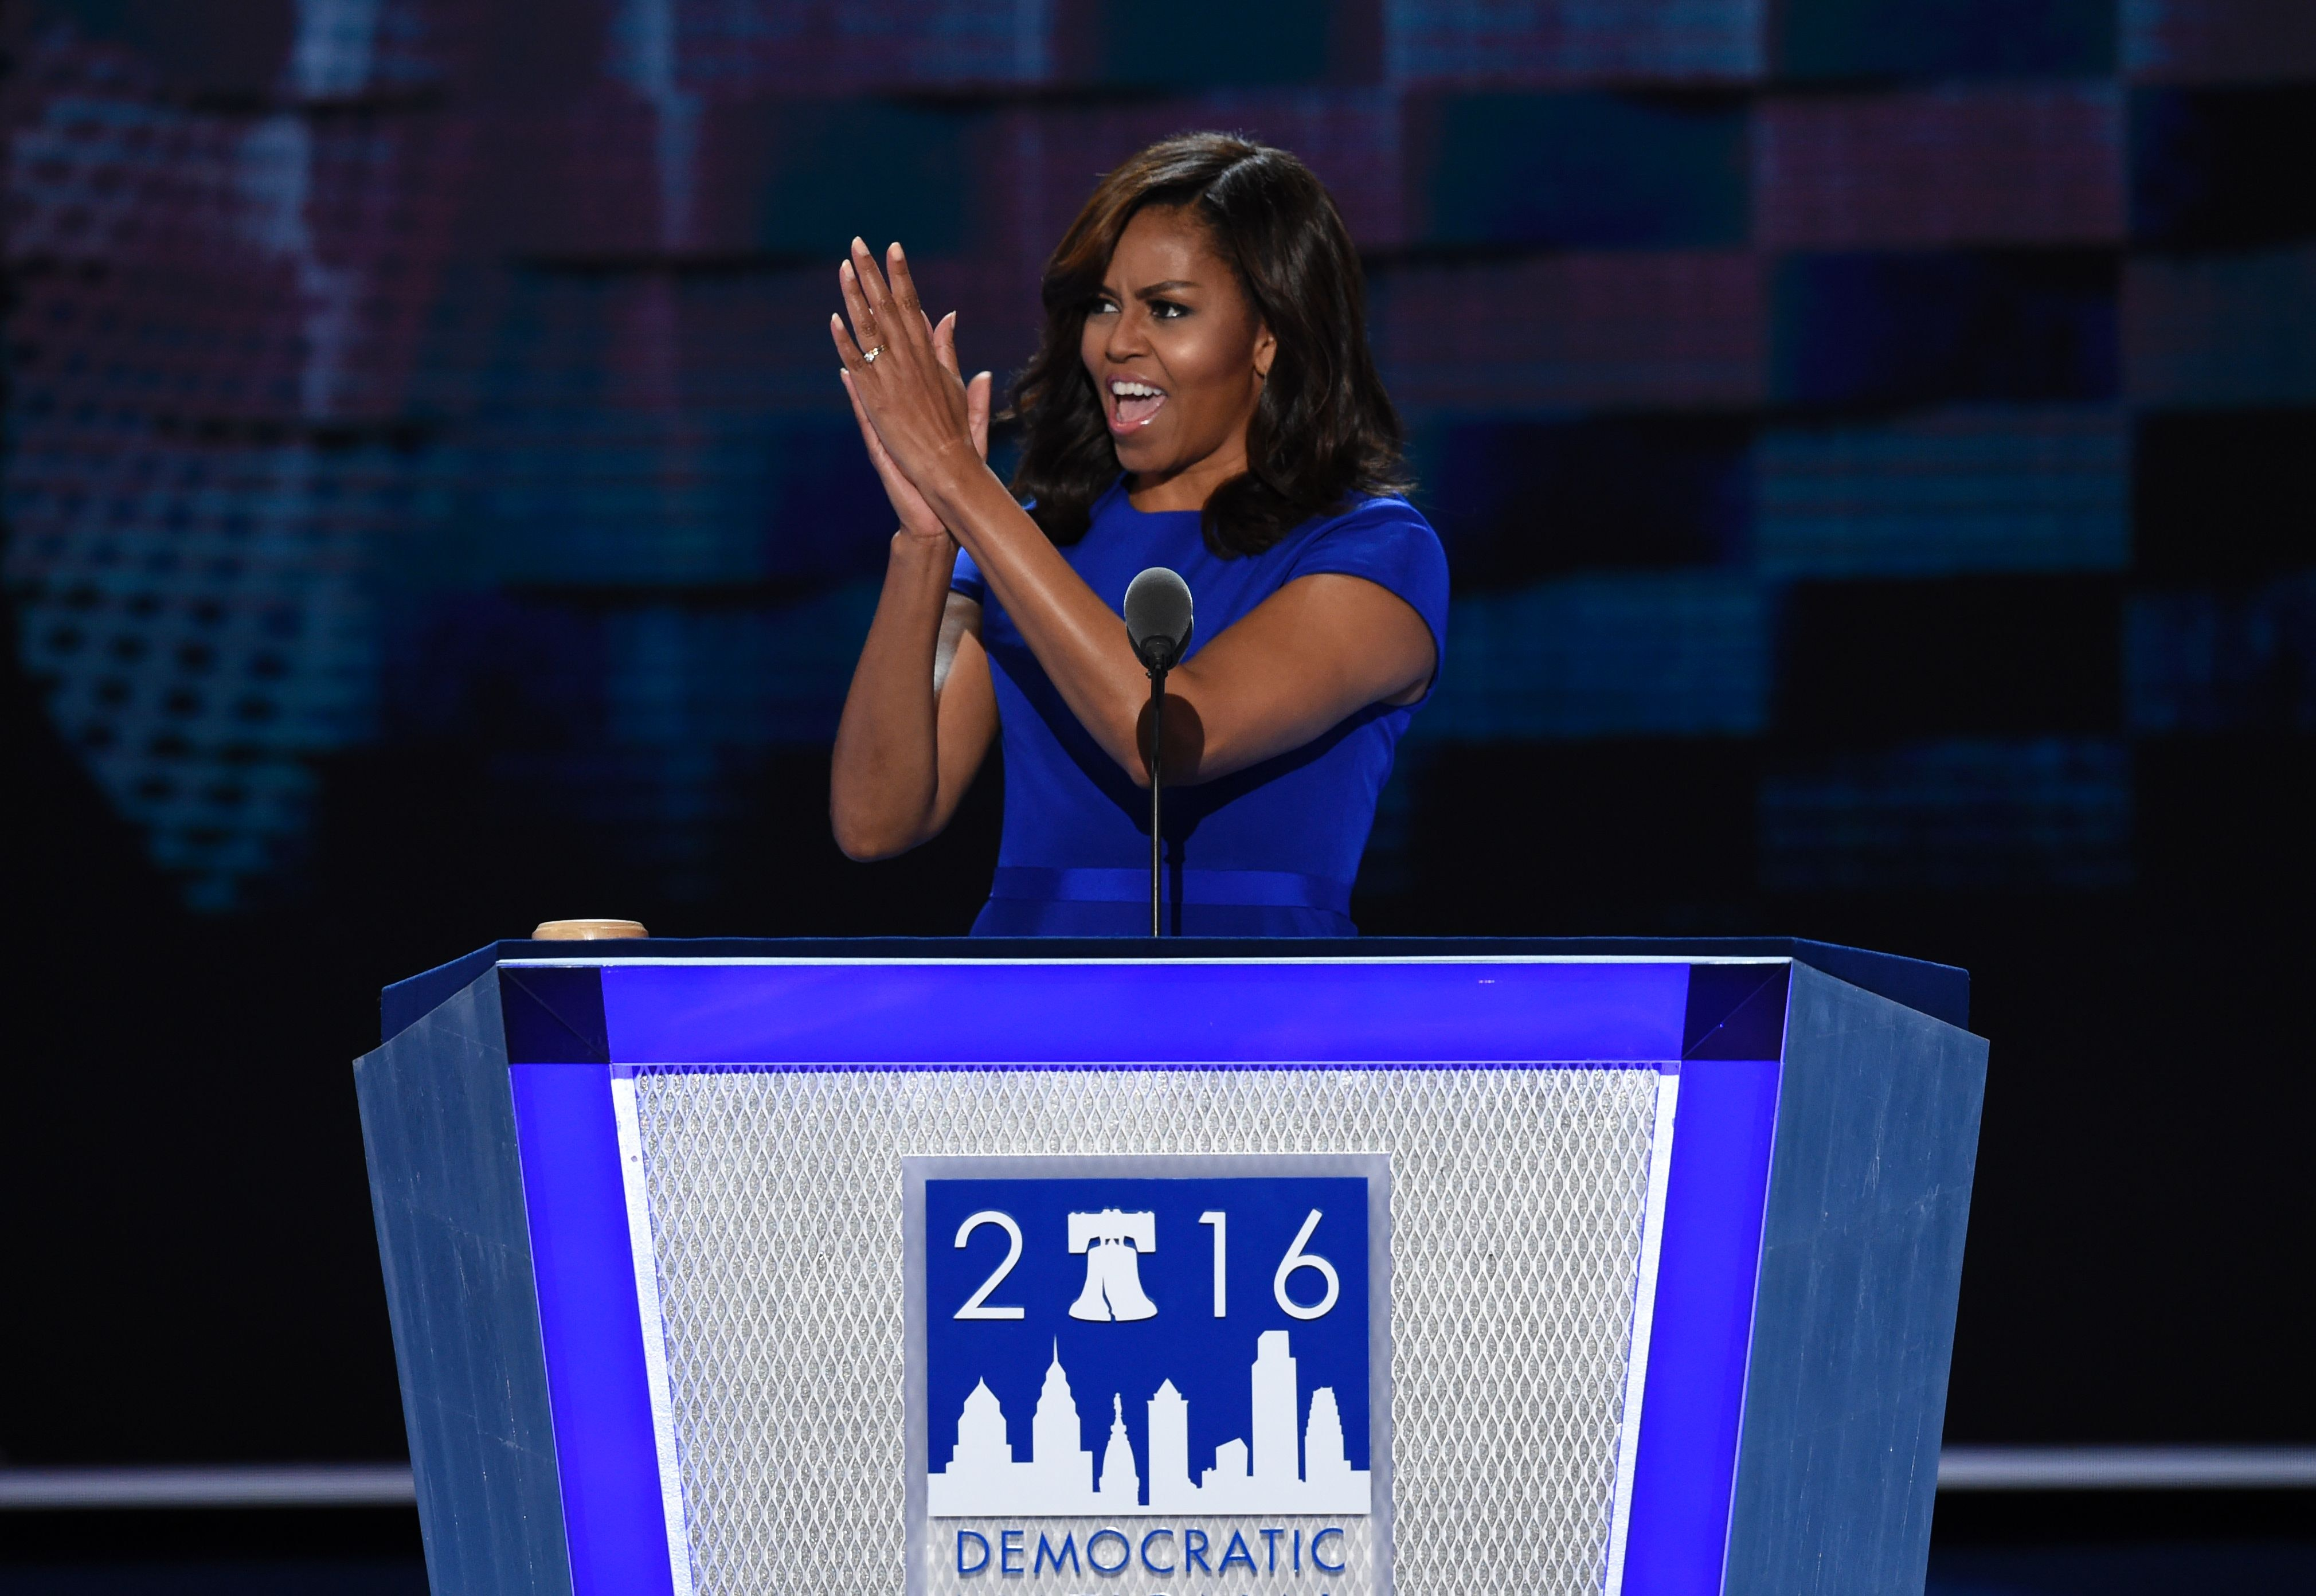 The Transcript Of Michelle Obama's DNC Speech Energized The Entire Crowd